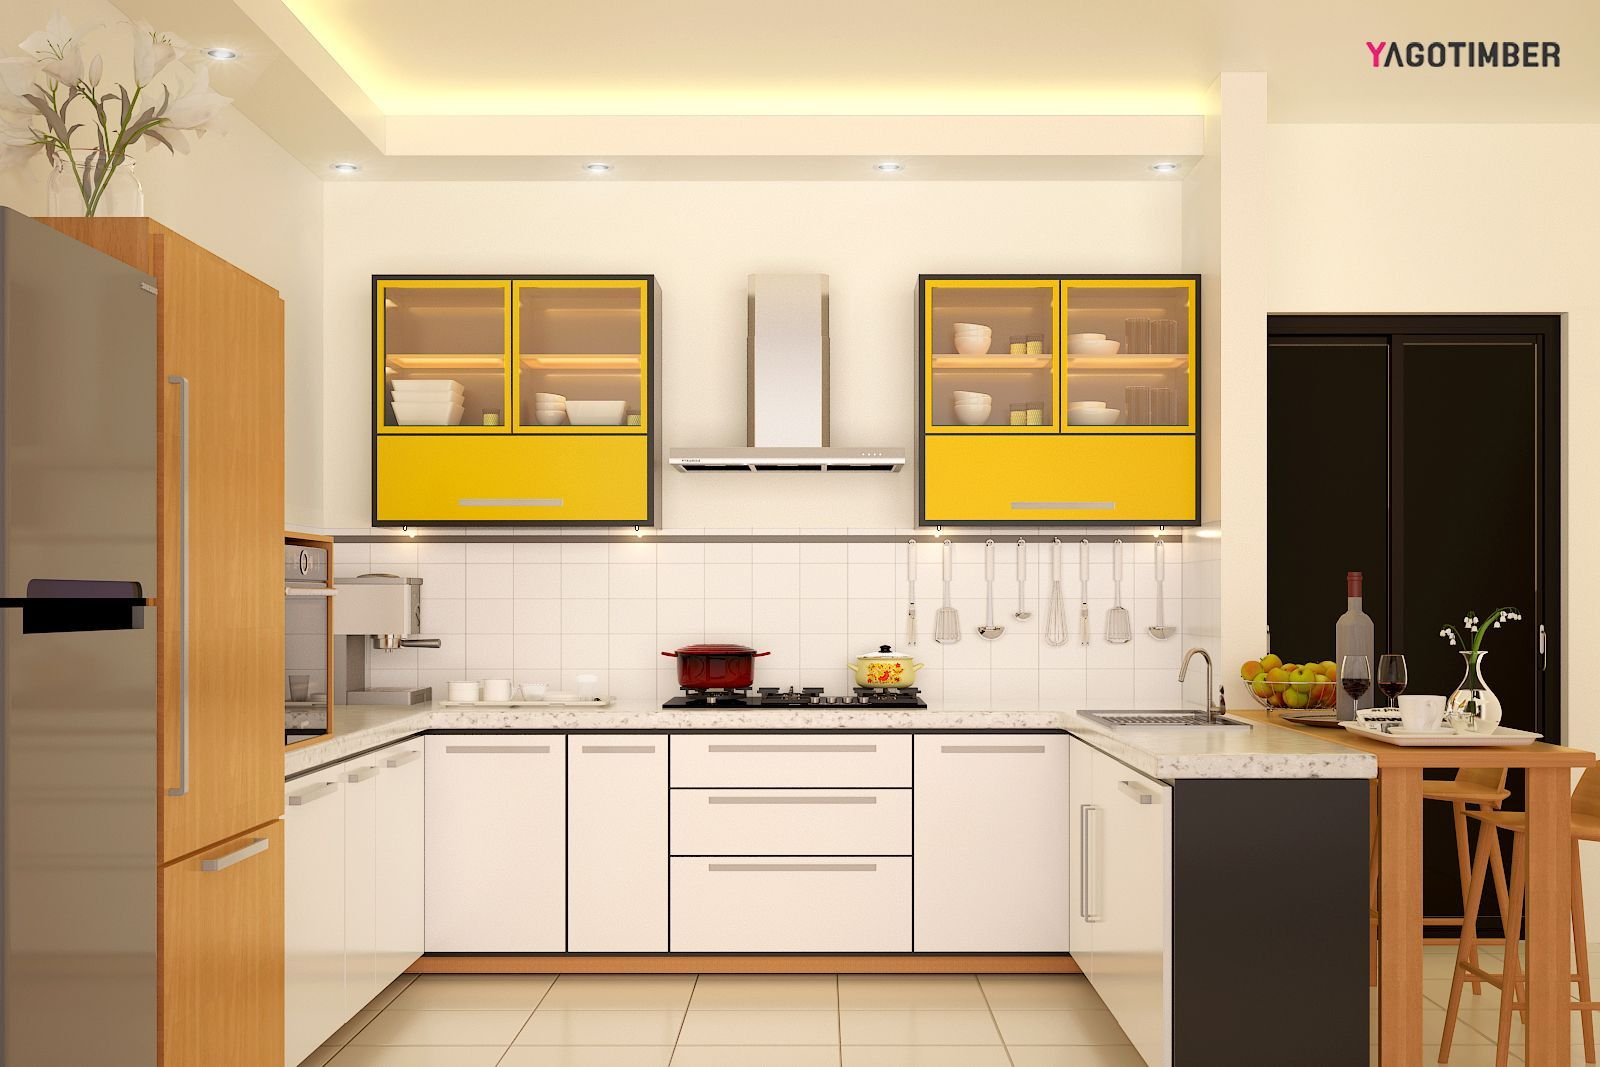 Parallel Modular Kitchen Design India Check more at http